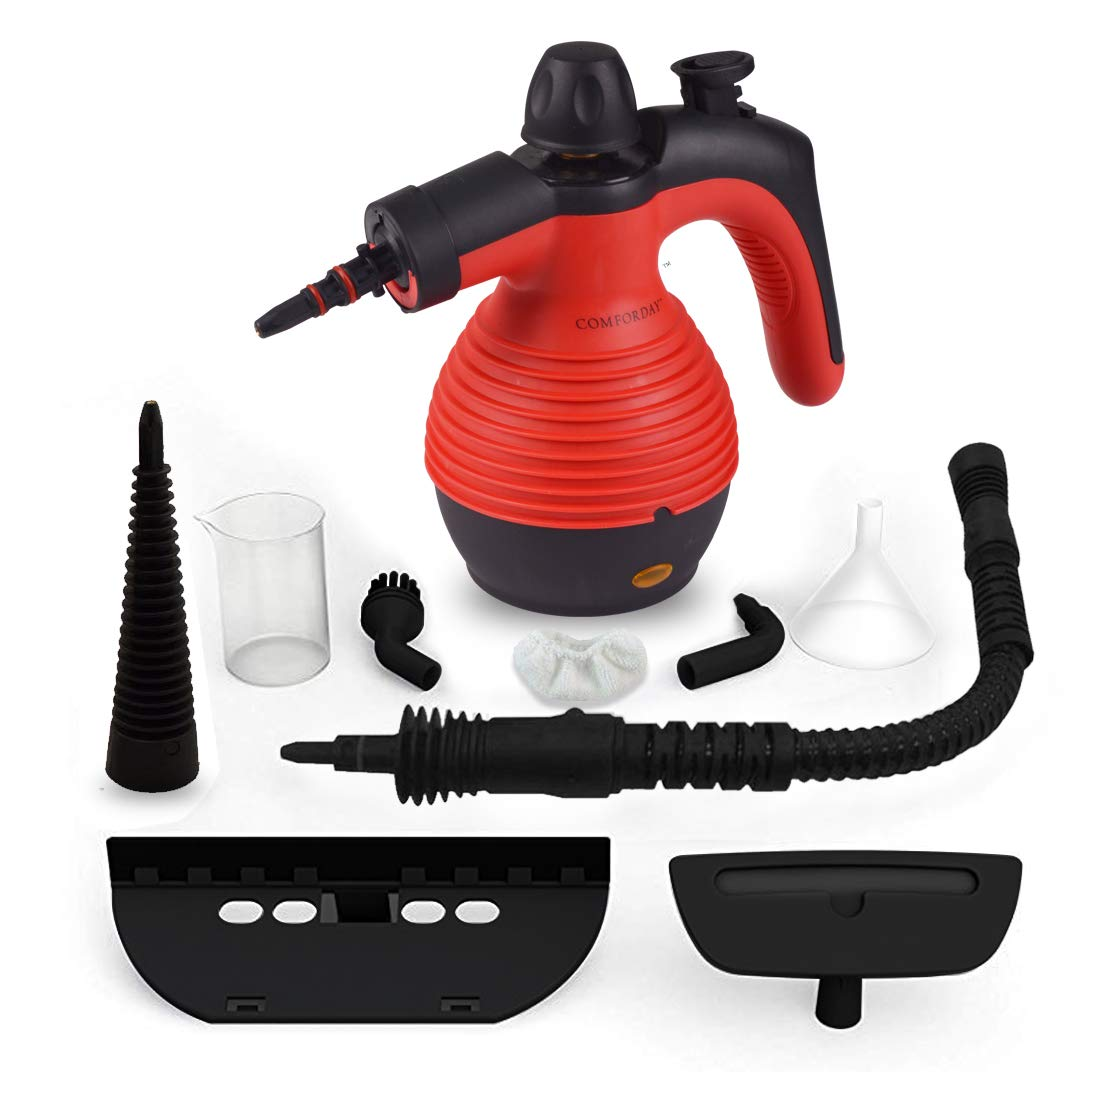 Comforday Steam Multi Purpose Handheld Cleaners High Pressure Steamer with 9-Piece Accessories, Perfect for Stain Removal, Carpet,Curtains, Car Seats,Floor,Window Cleaning, Red by Comforday